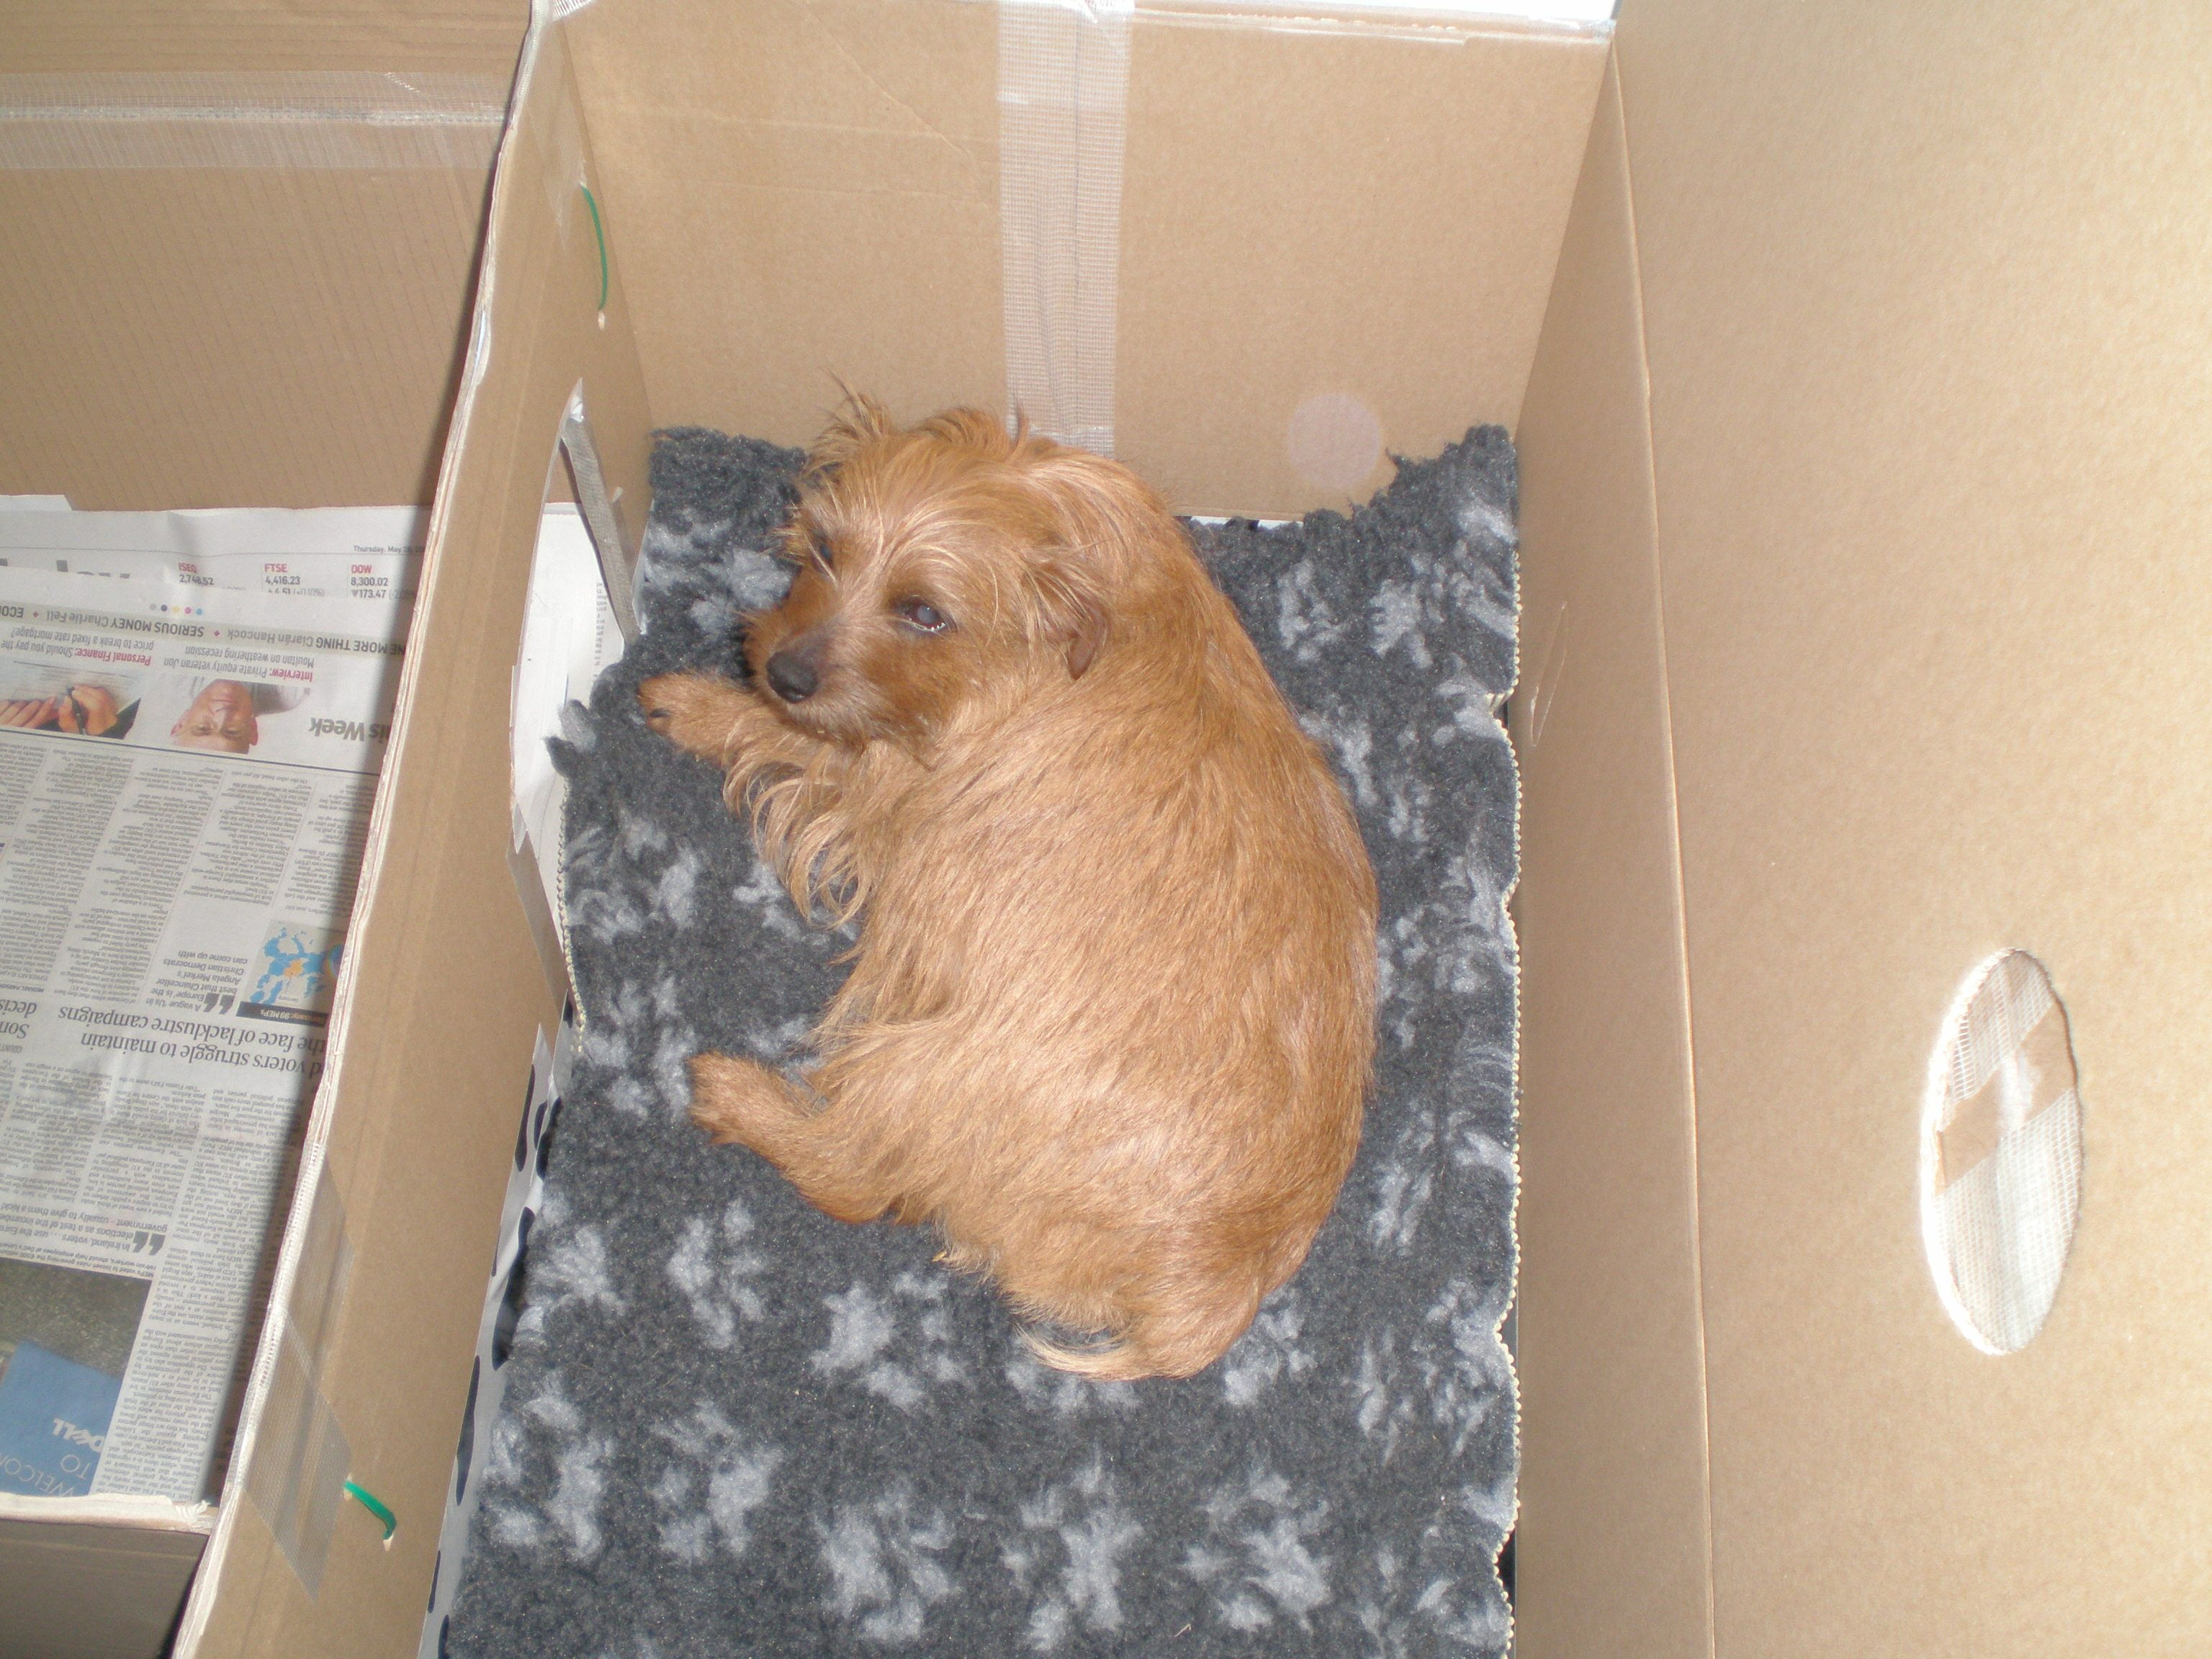 How To Build A Whelping Box For Small Dogs Whelping Box Animal Room Small Dogs